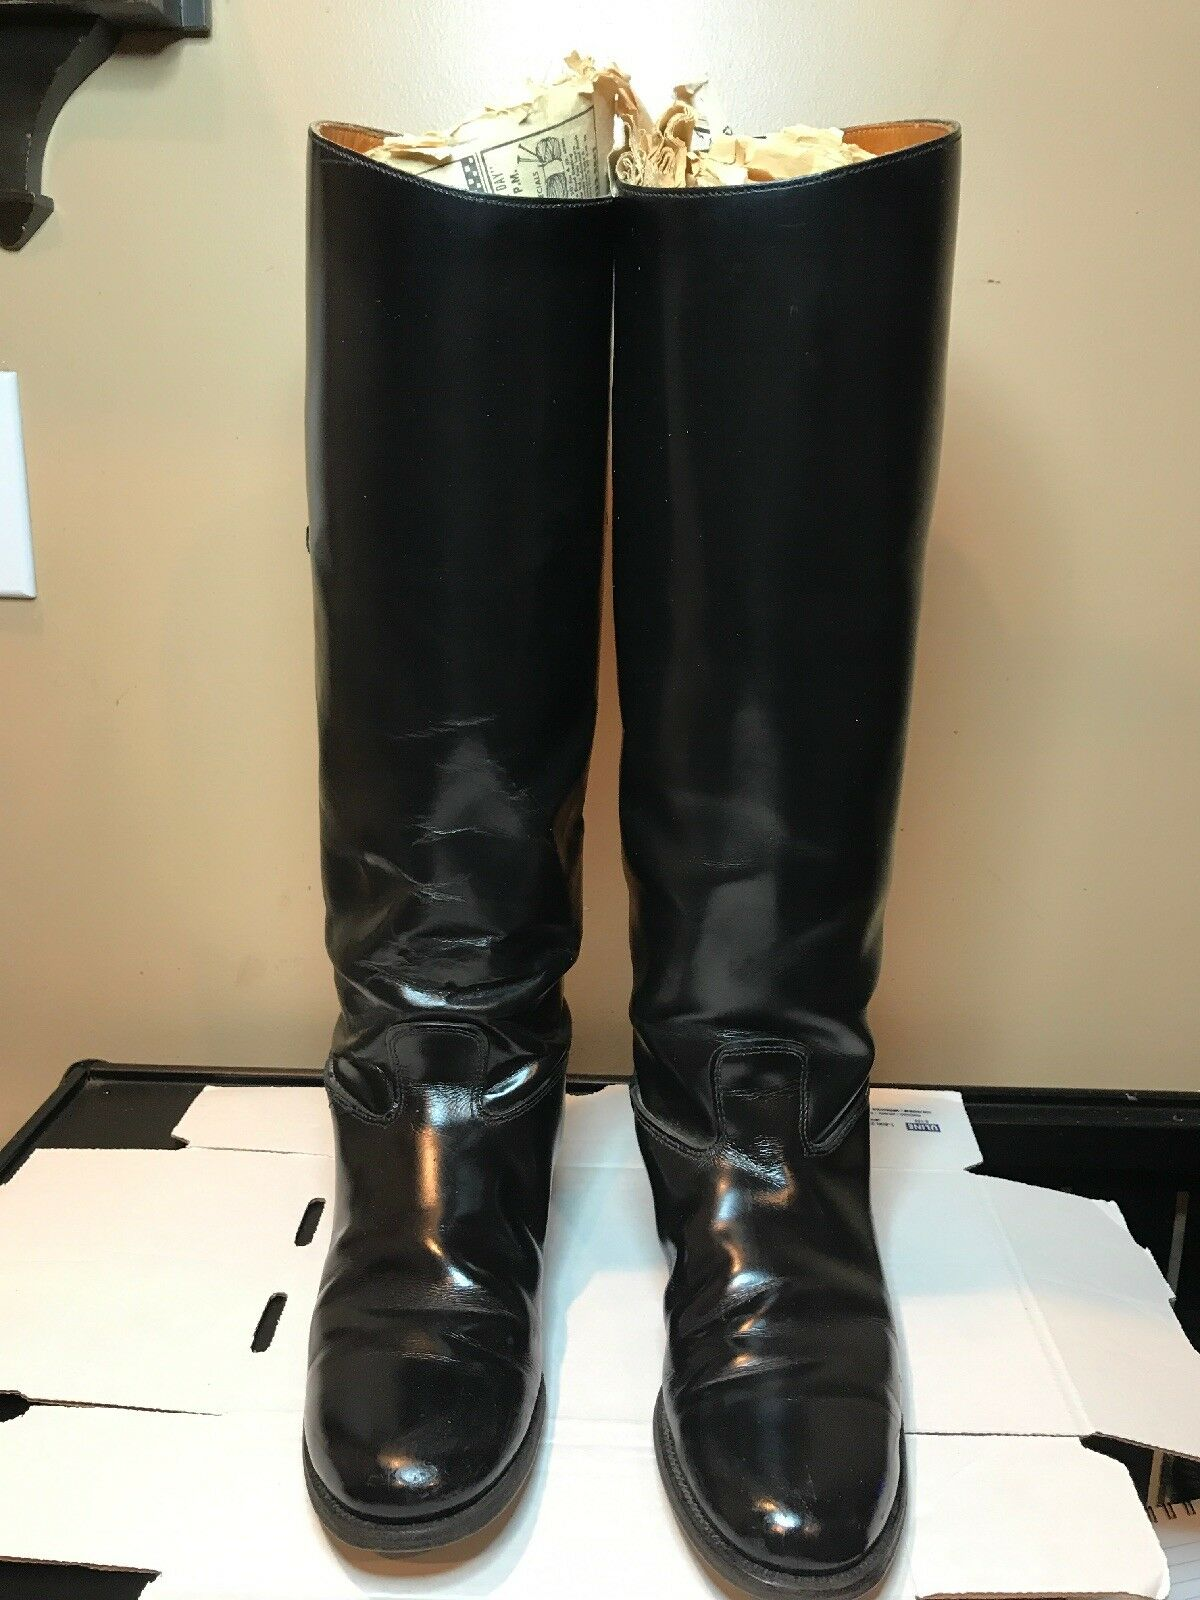 Vintage donna's Leather stivali.Equestrian StyleDimensione 8. At Least 50 Years Old